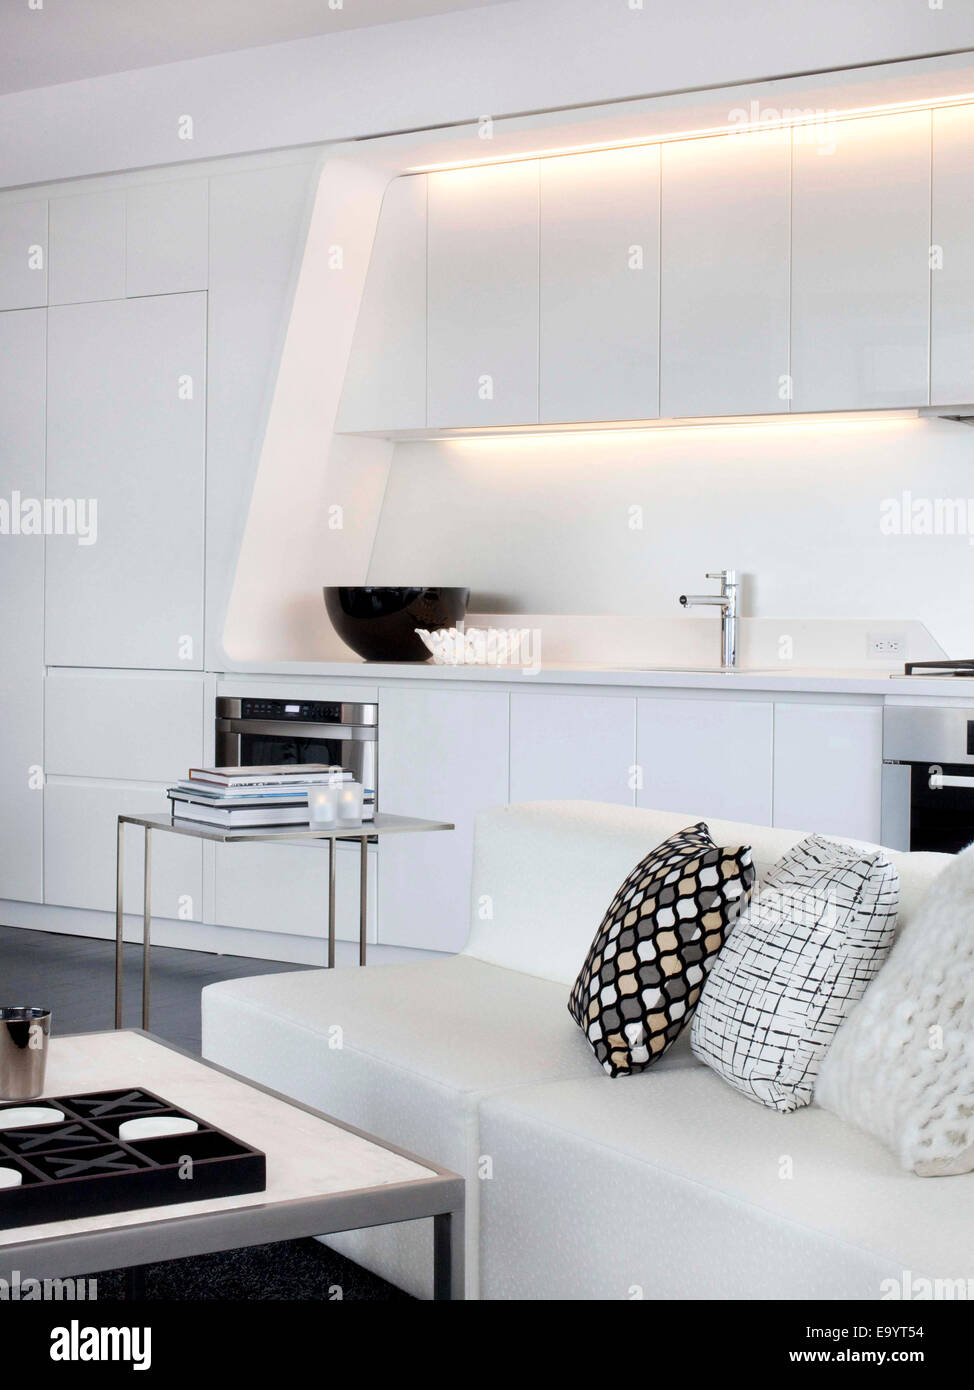 all white couch and kitchen in loft apartment - Stock Image